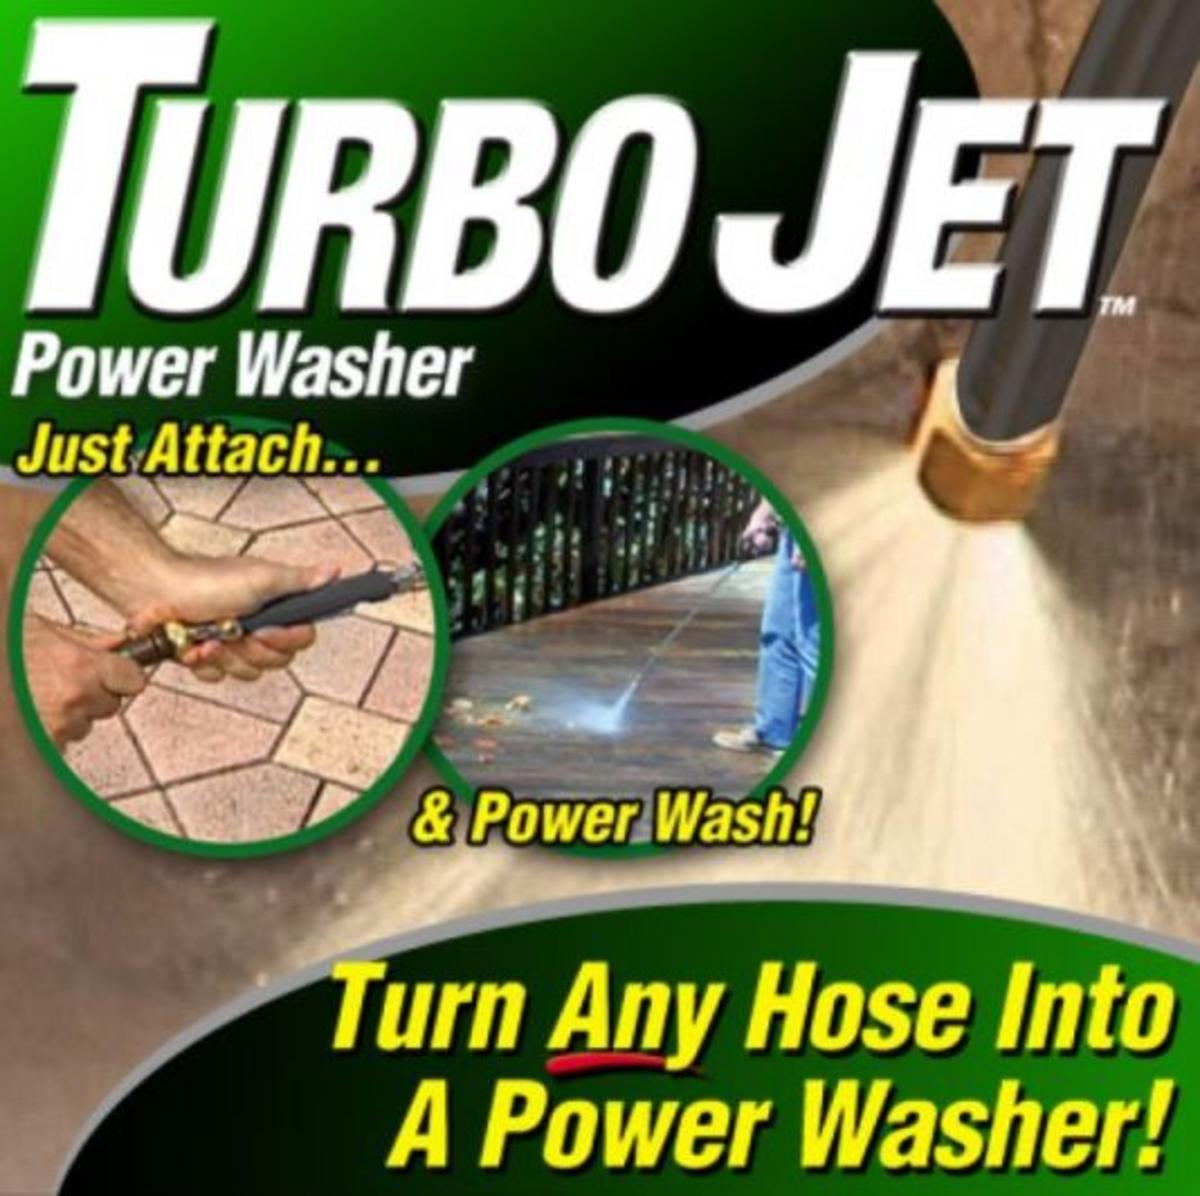 The Turbo Jet Power Washer turns any hose into a power washer! Blast away dirt, grime , mold from wood, aluminum and vinyl siding, concrete, brick stone and so much more.   Turbo Jet as seen on TV puts the power of a professional power washer in your hands! Simply connect the nozzle to any hose and you can instantly clean second floor windows, dirty decks, grimy patios, and mud that has been caked onto your car, instantly! The secret is Turbo Jet's built-in pressure chamber that converts the normal flow of water in your hose into a powerful jet stream. The control valve allows you to adjustable the pressure and force of the jet stream. Made with durable aluminum and has a stainless steel finish with quality brass fittings. Includes Turbo Jet, 1 Jet-Stream Nozzle and 1 Fan-Spray Nozzle.  Features:  Transforms ordinary your water hose into a high-pressure power washer Remove built-up dirt and mold on wood or aluminum siding, concrete foundations Easily wash your car, truck,